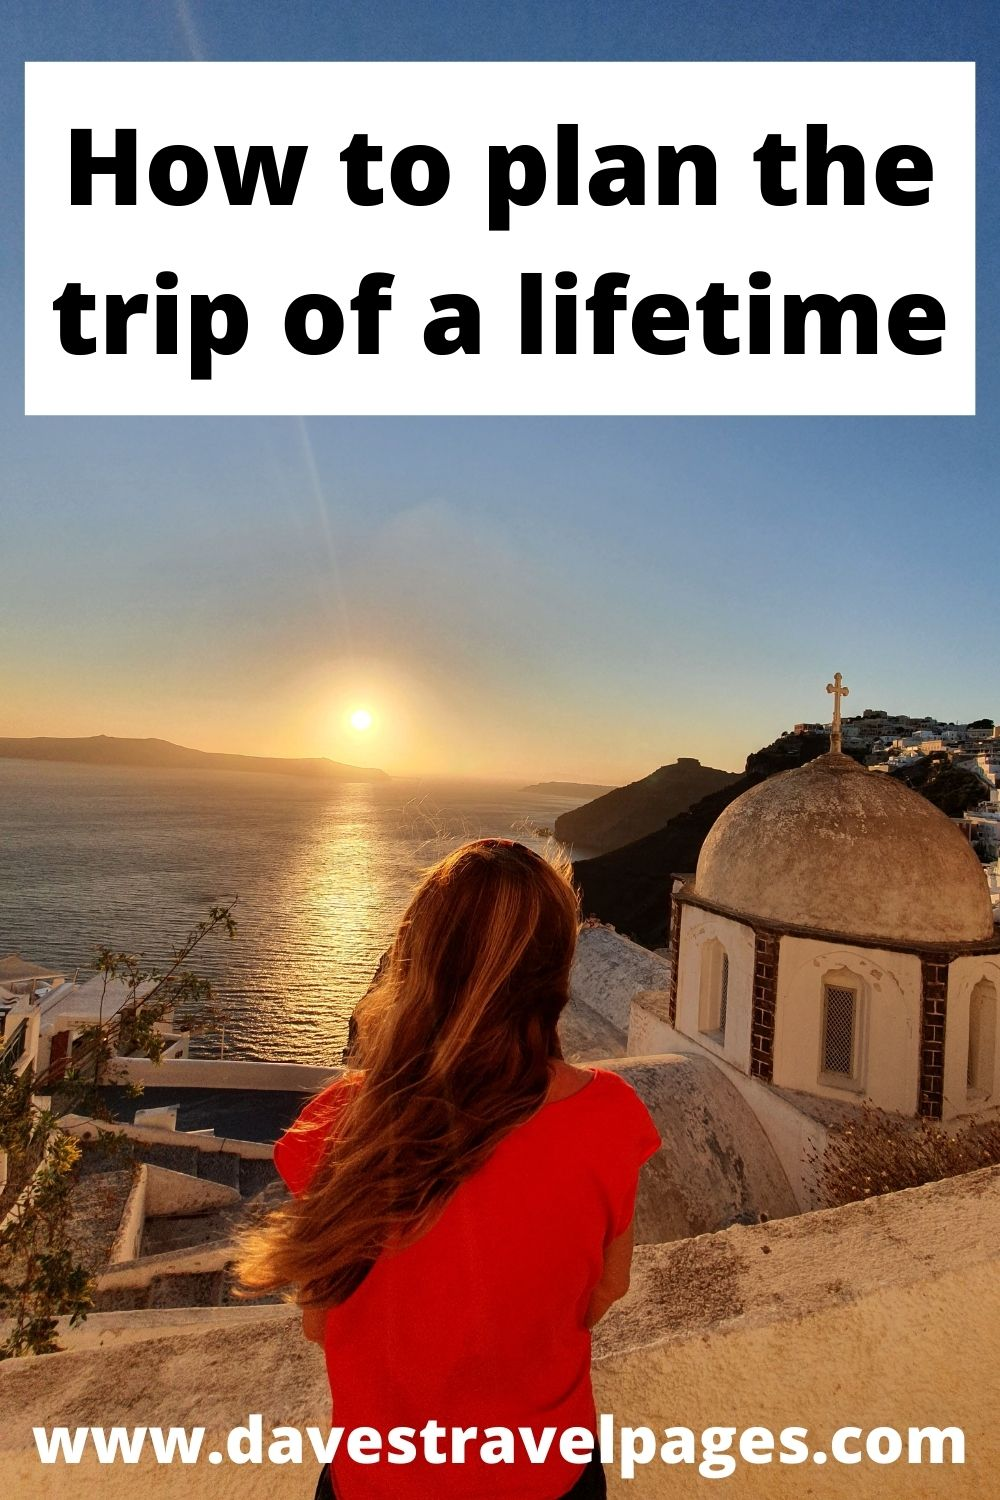 Planning the trip of a lifetime step by step